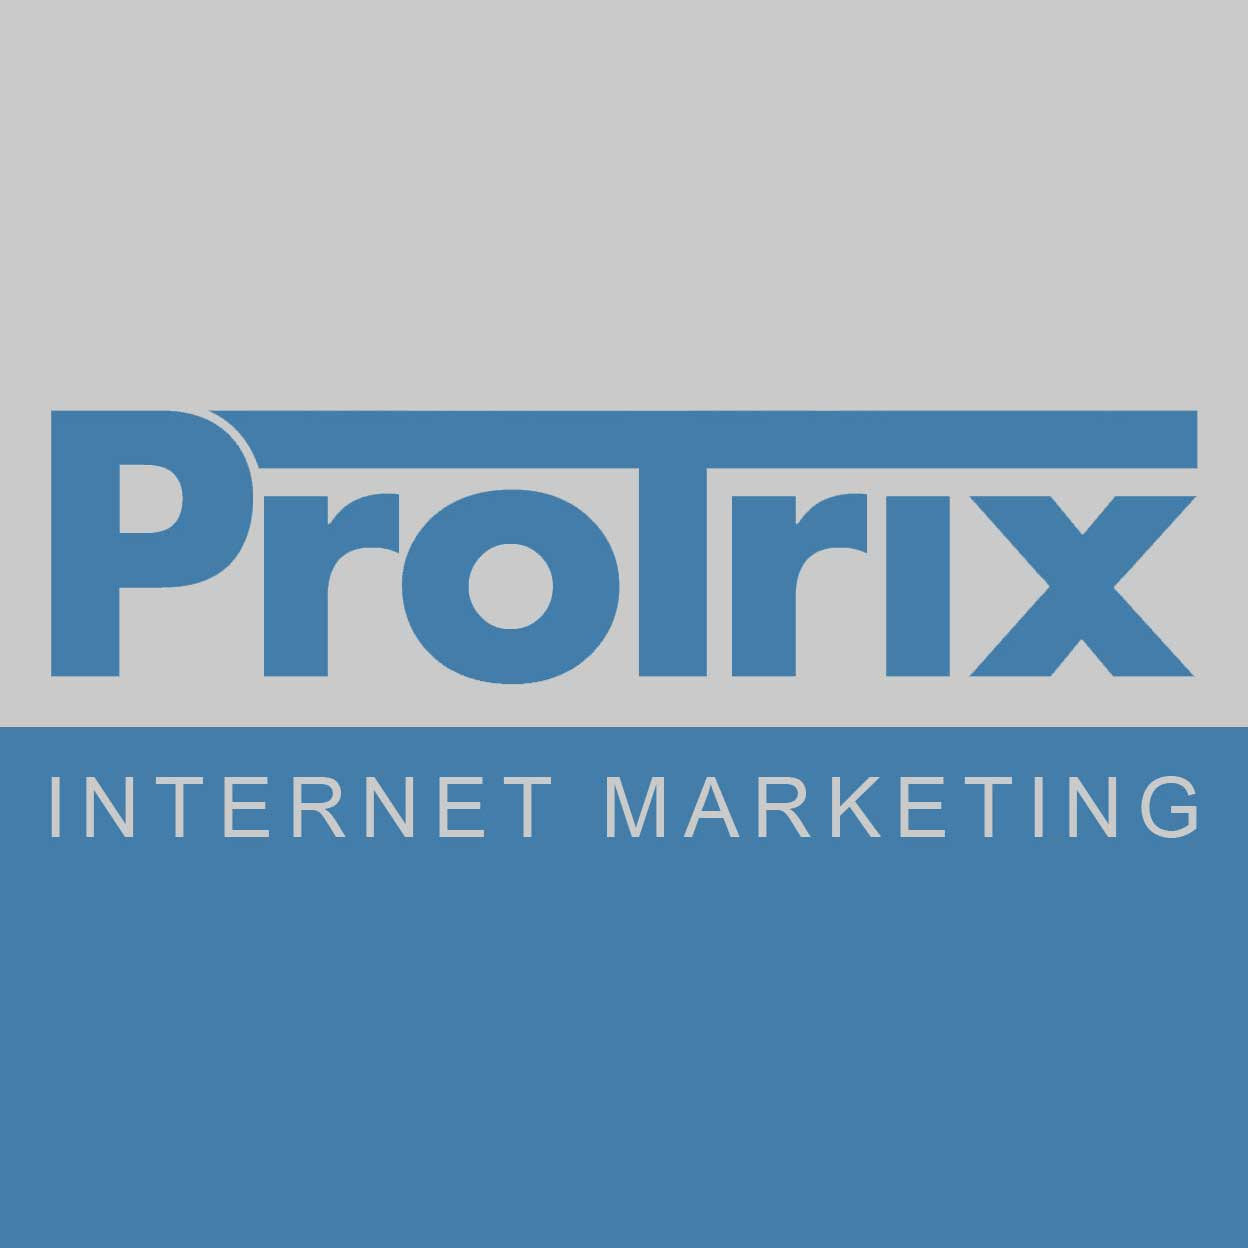 ProTrix Internet Marketing & SEO Specialist met Wordpress